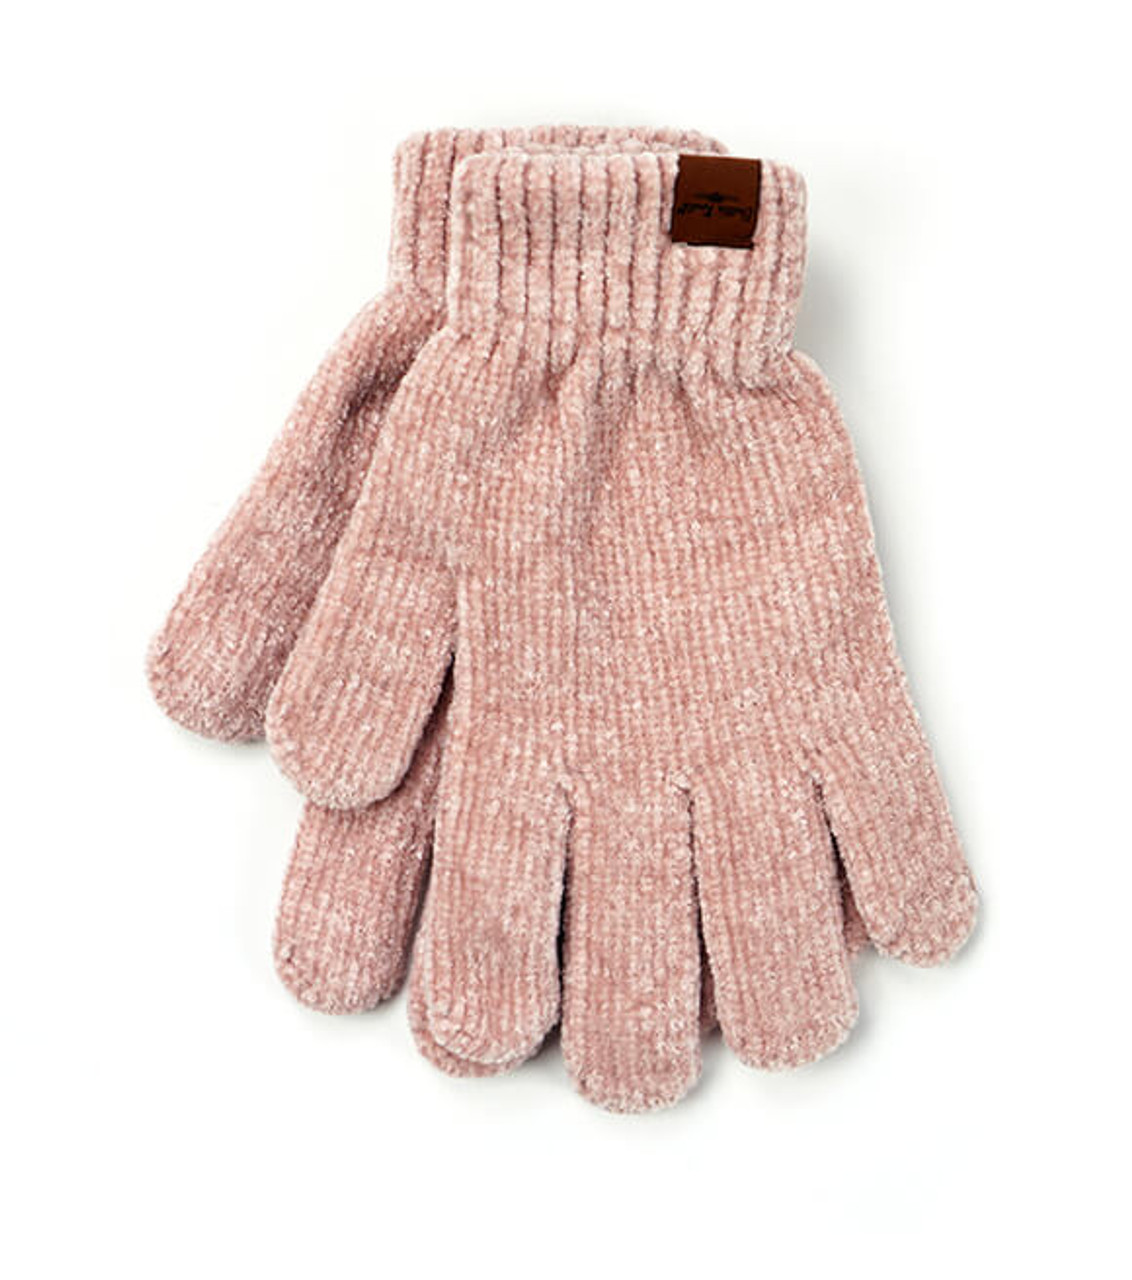 Ultra-soft blush chenille gloves with extended wrist cuffs; all the warmth without the weight. One size fits most.